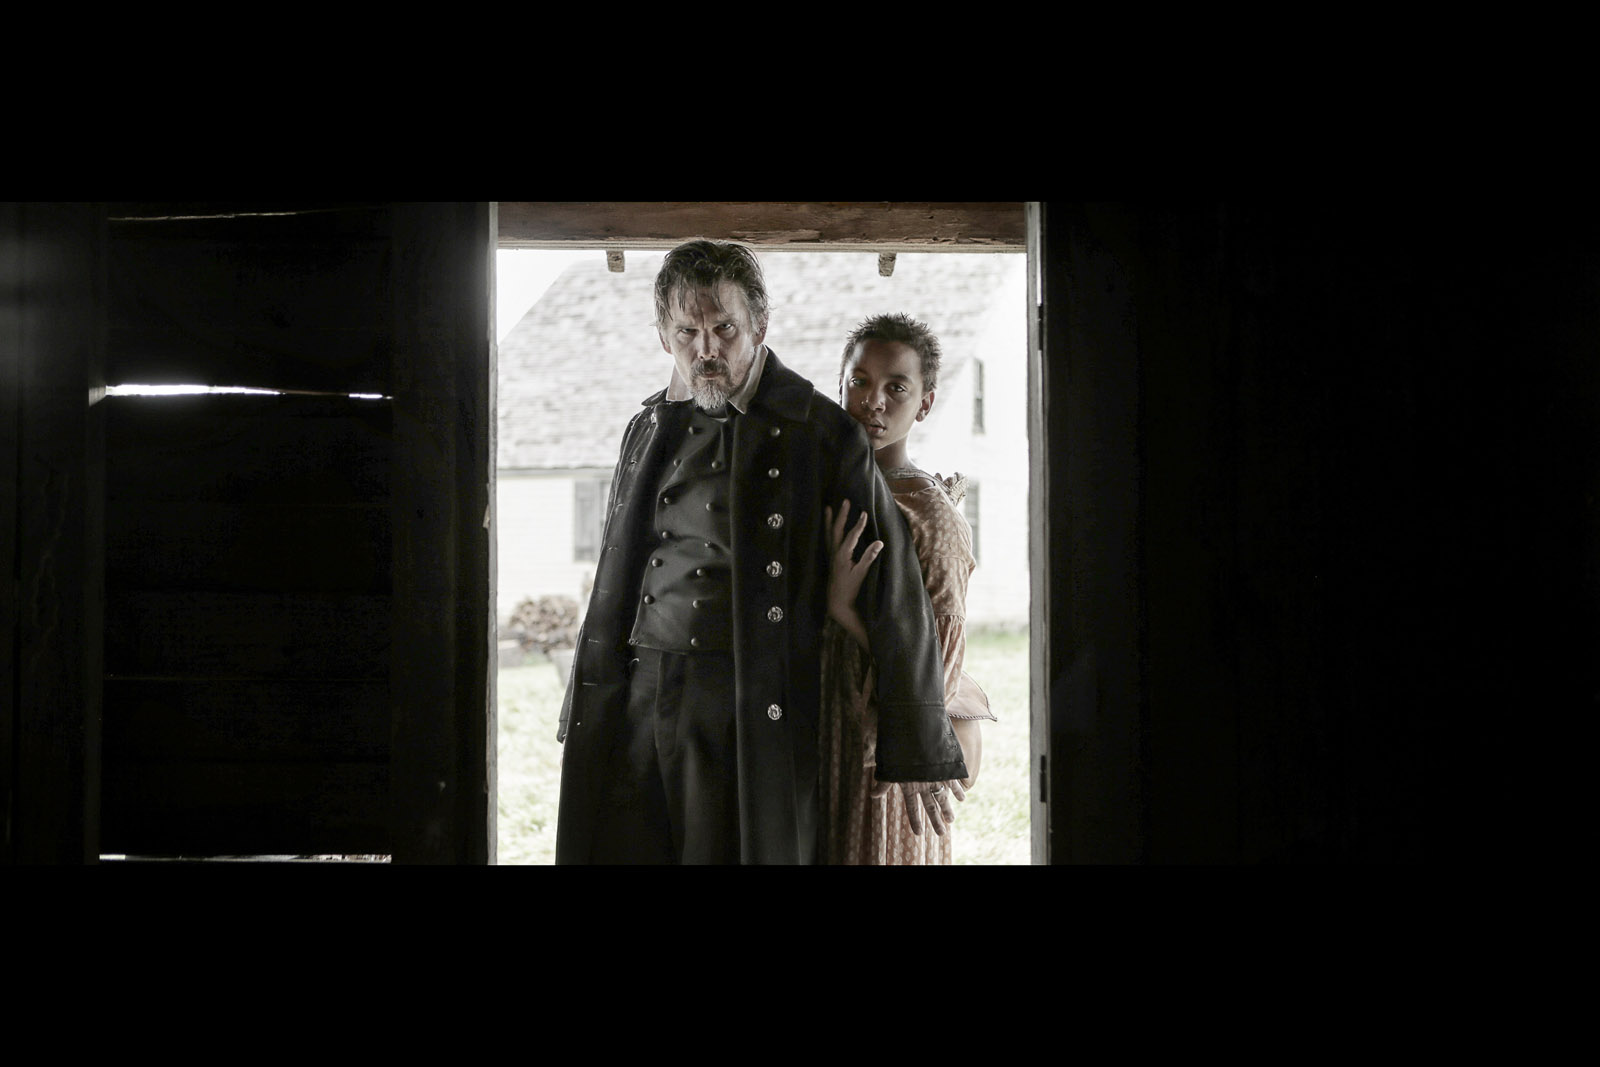 Ethan Hawke as John Brown and Joshua Johnson-Lionel as Onion in The Good Lord Bird.